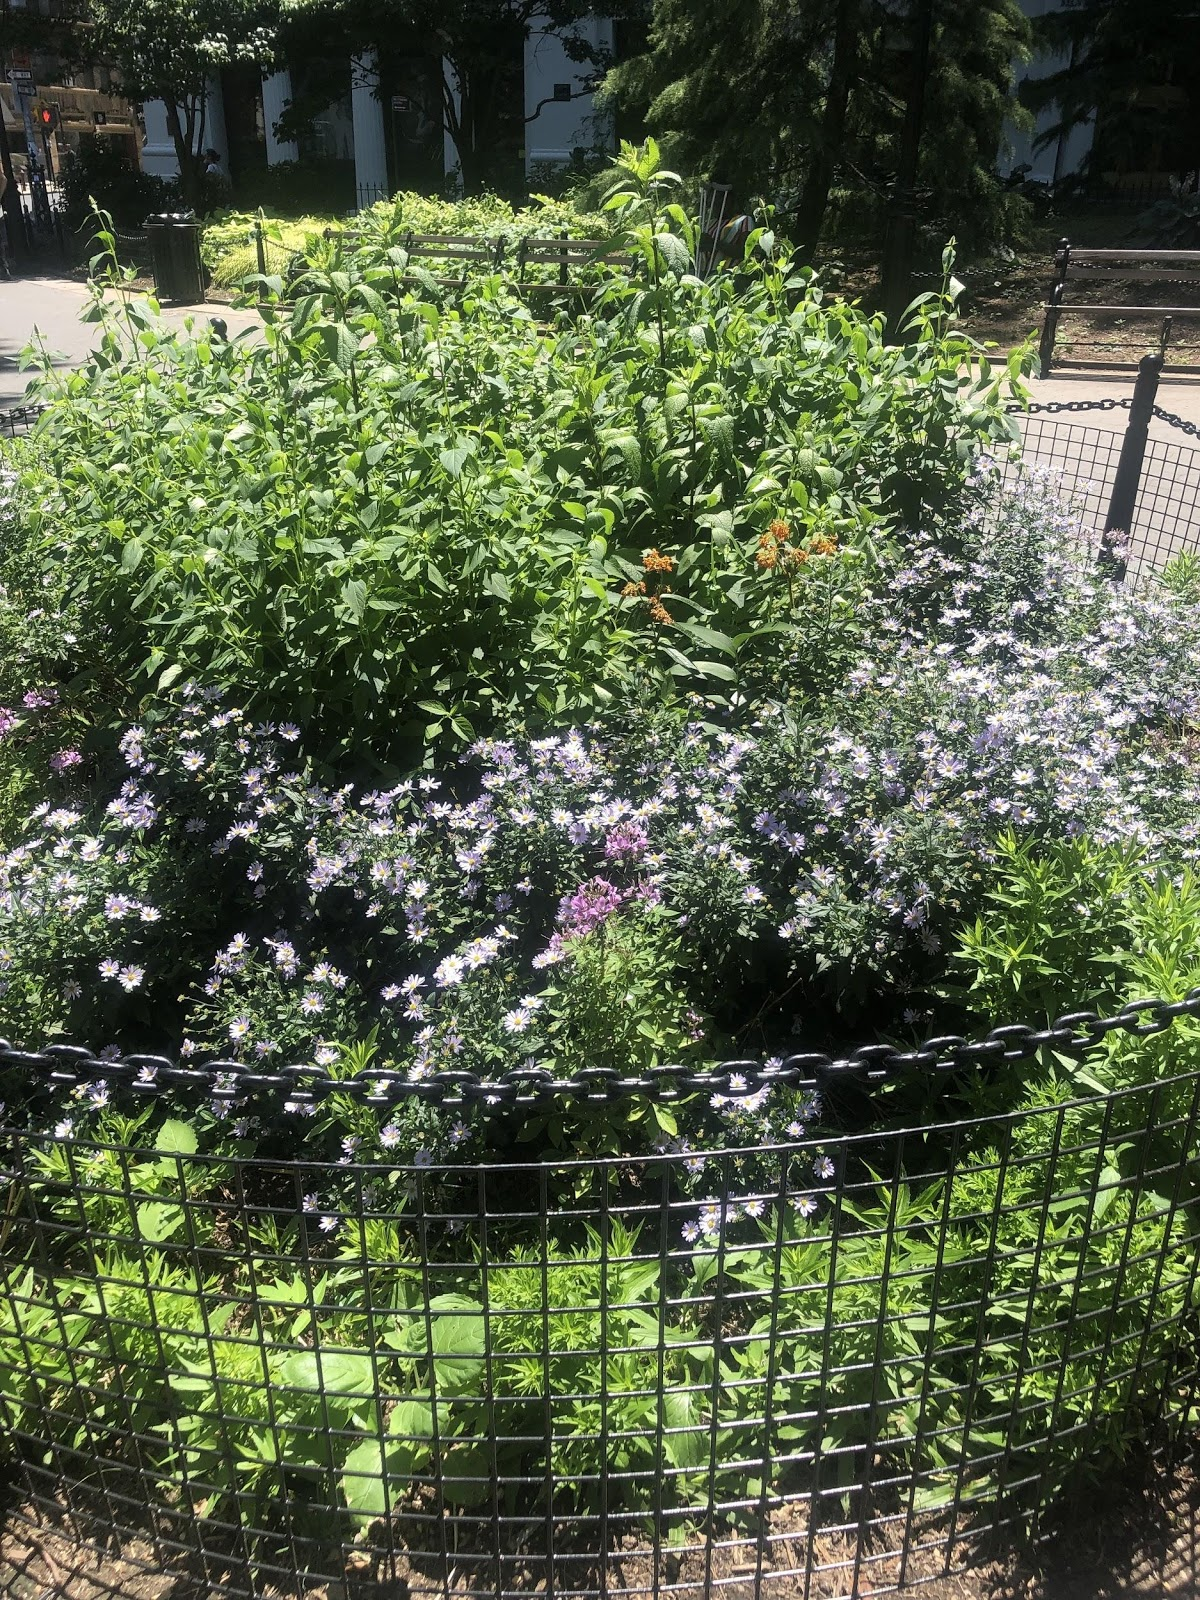 A specific part of Washington Square Park designed to attract pollinating insects.